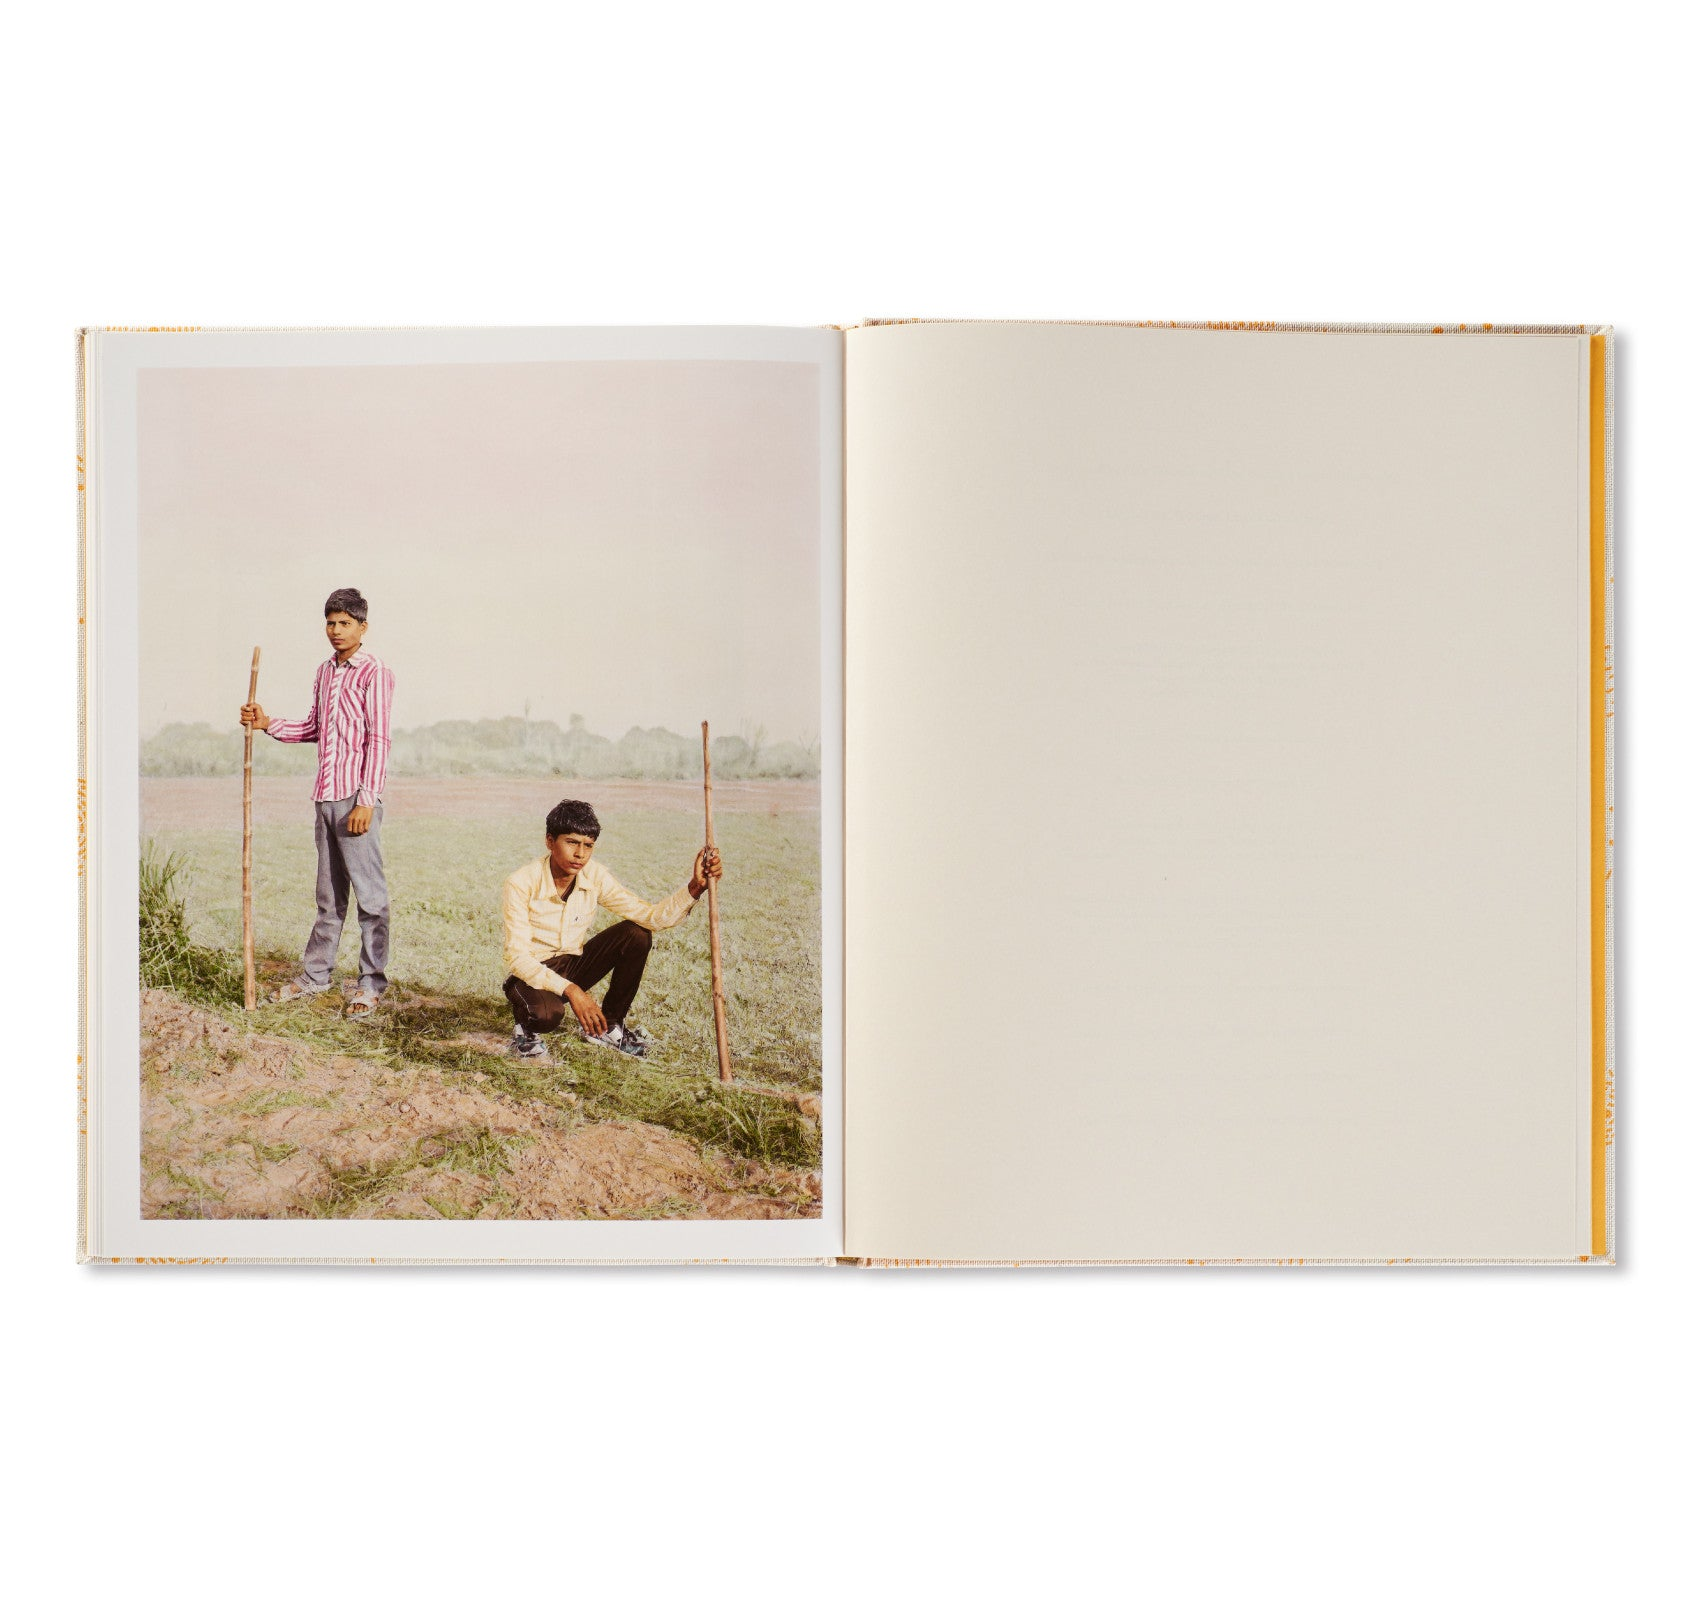 EARLY TIMES by Vasantha Yogananthan [SIGNED]